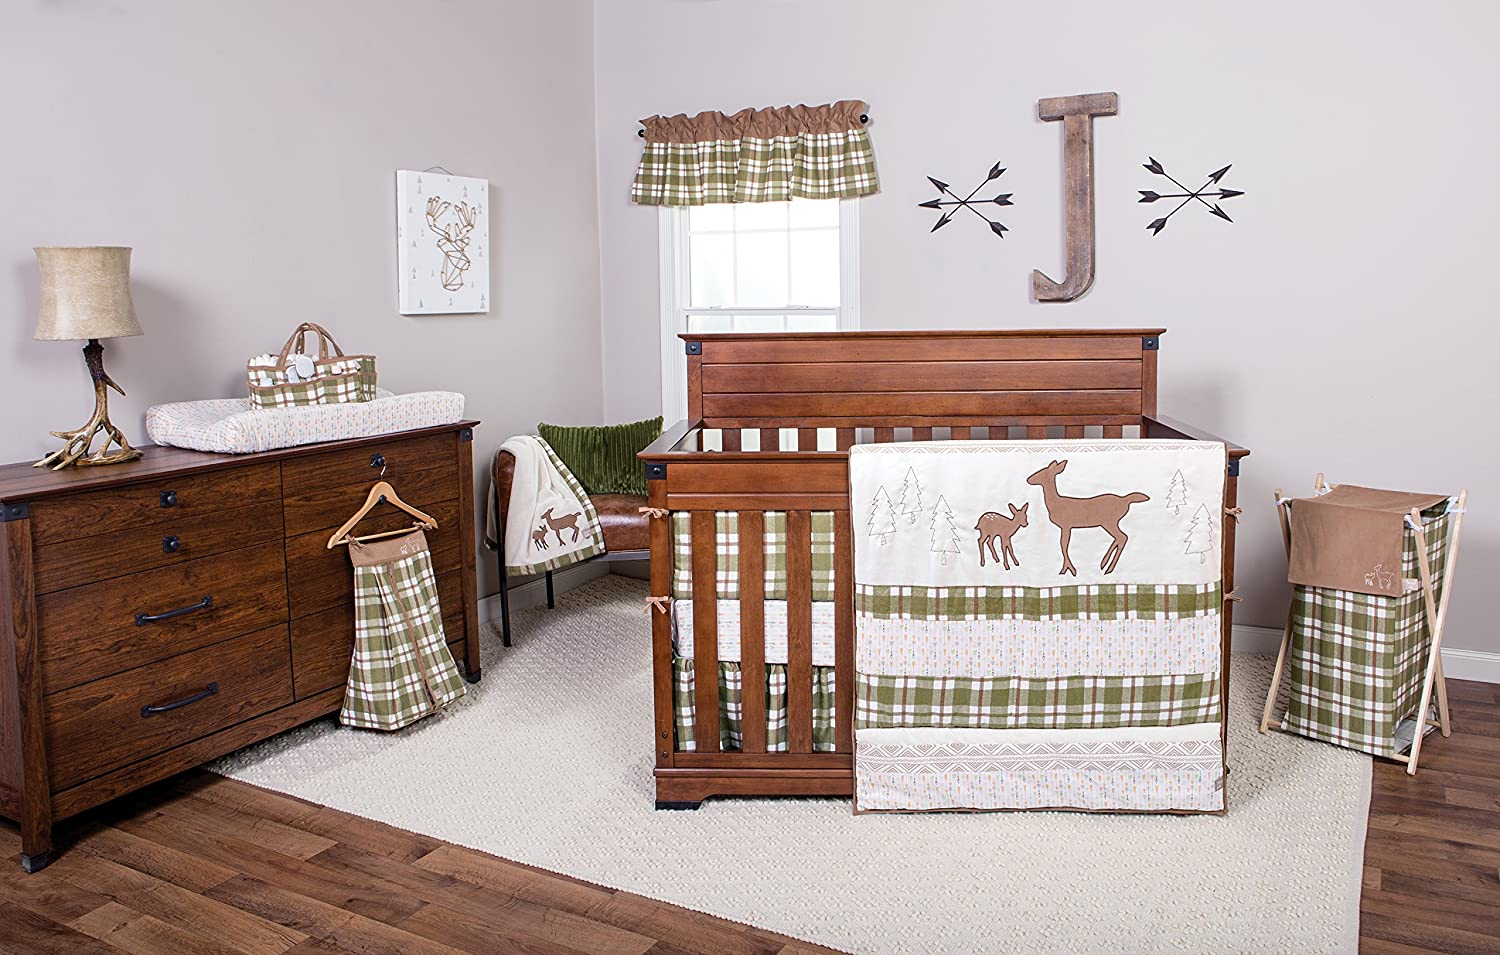 Amazon.com: Trend Lab Plaid Deluxe Flannel Changing Pad Cover, Sage/Brown/Cream: Baby